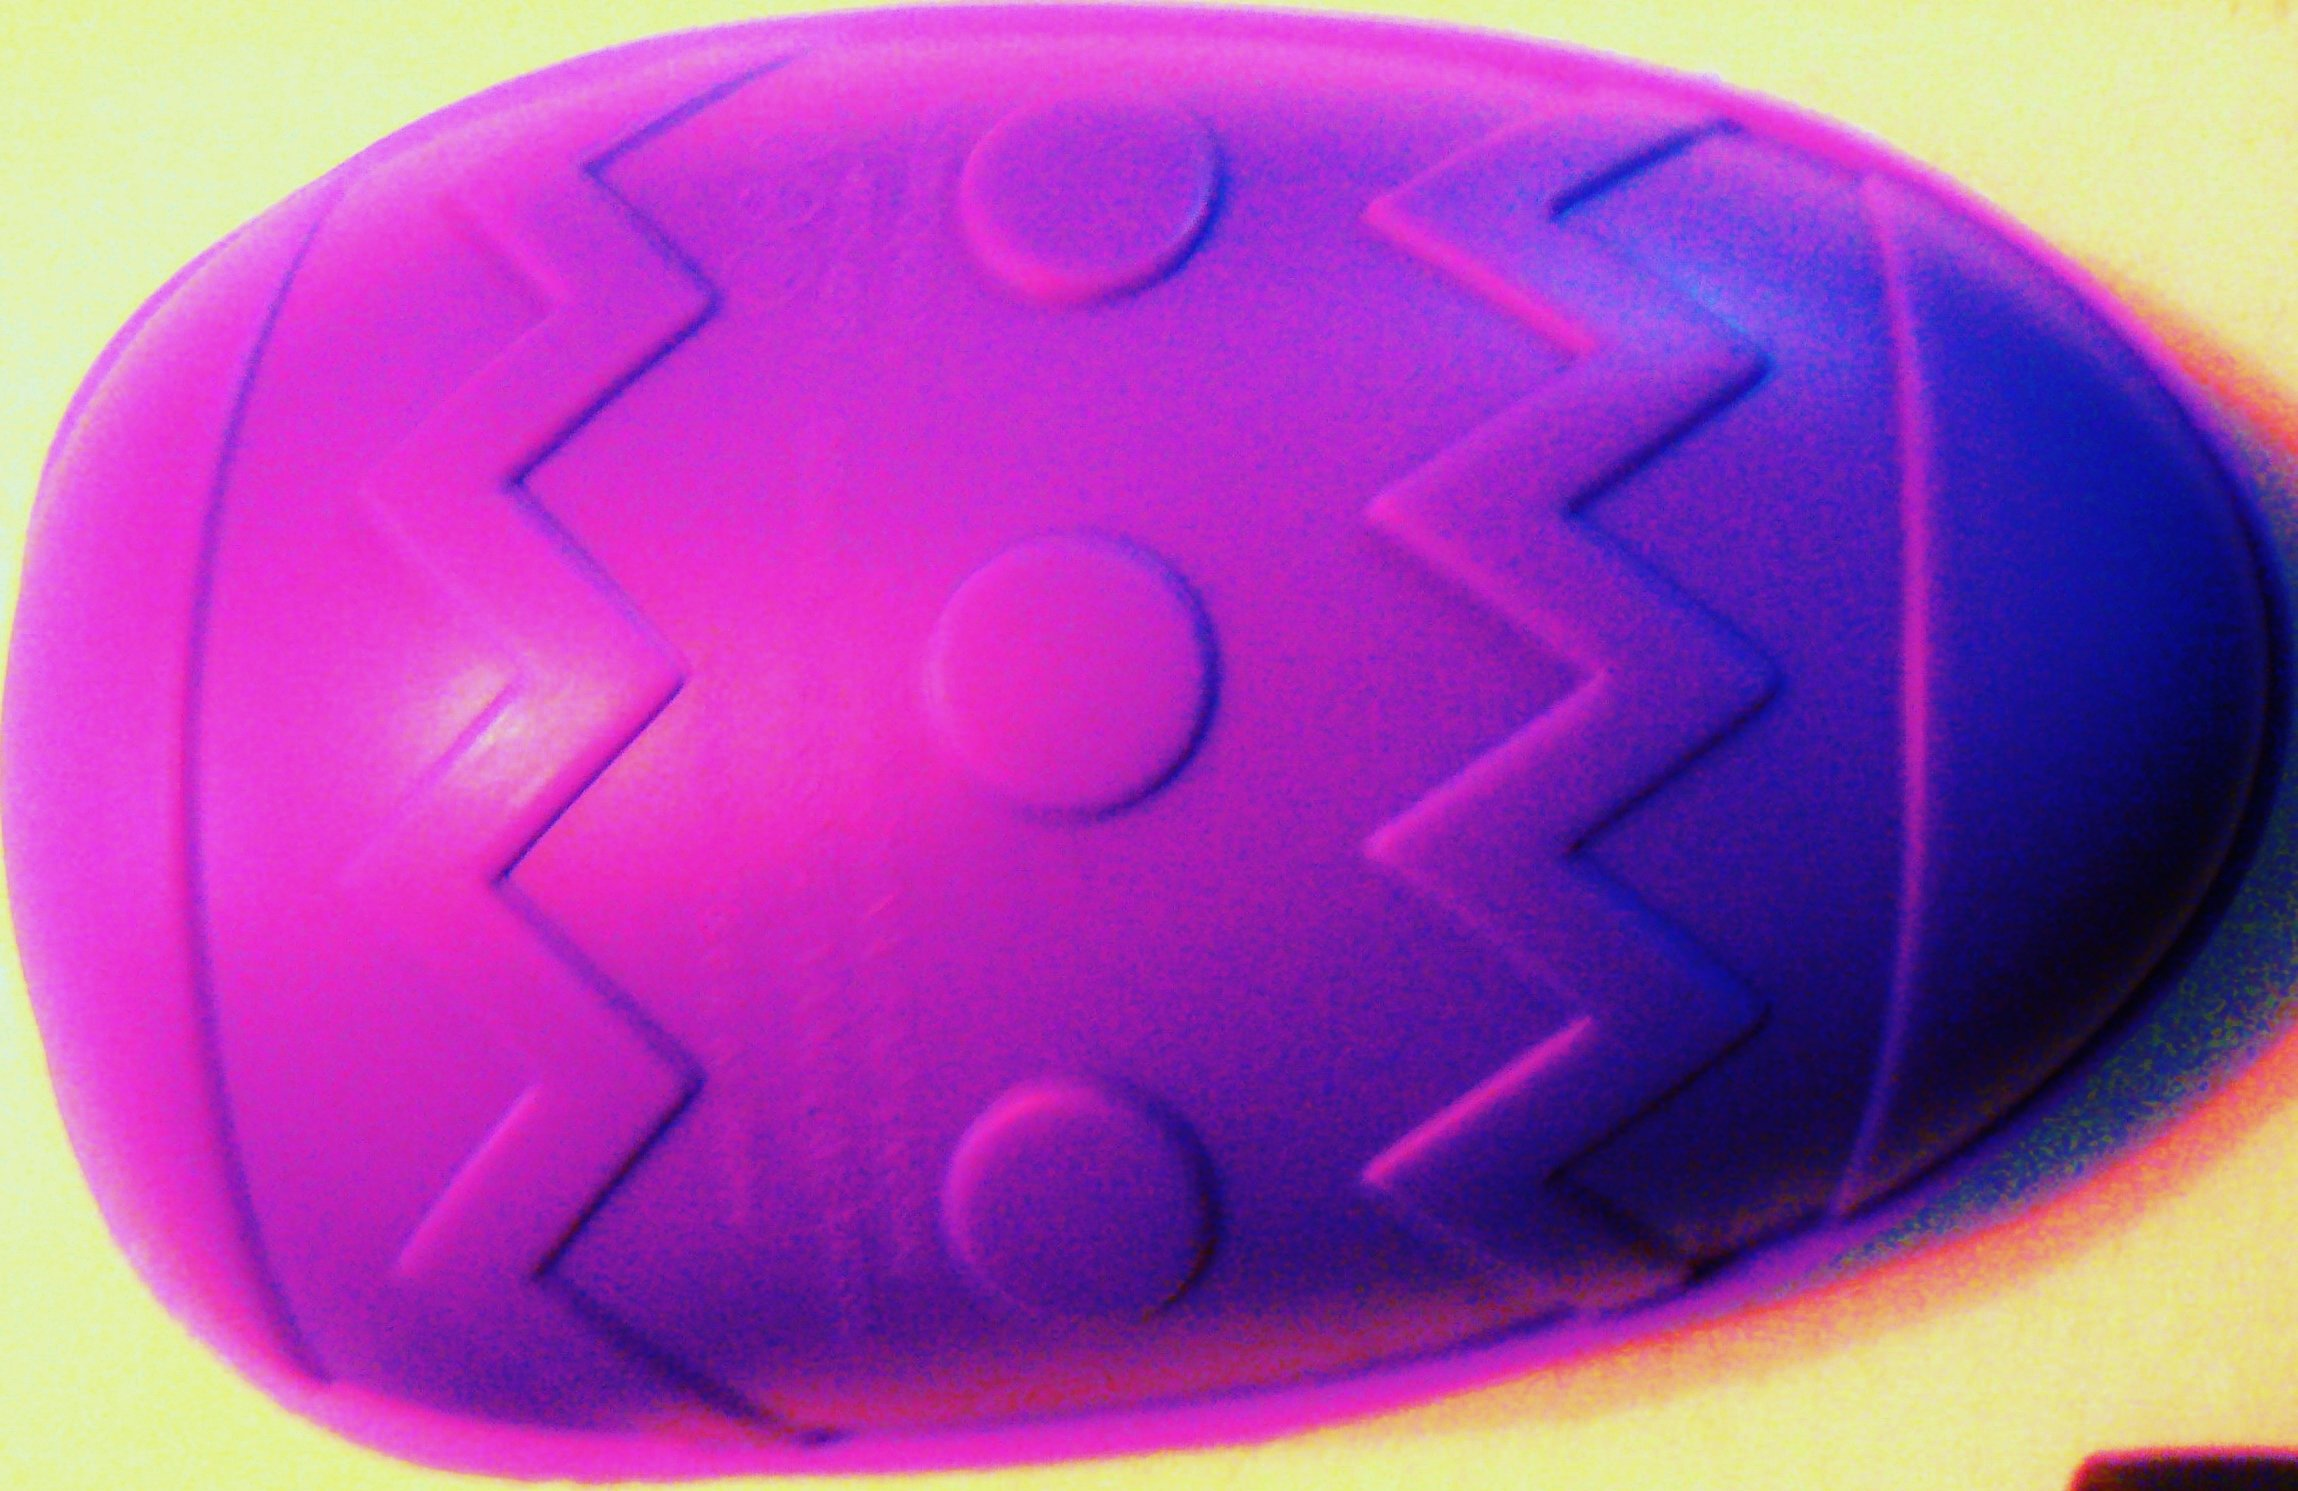 Easter Egg Cake Pan by Avon Products by Avon Products (Image #1)